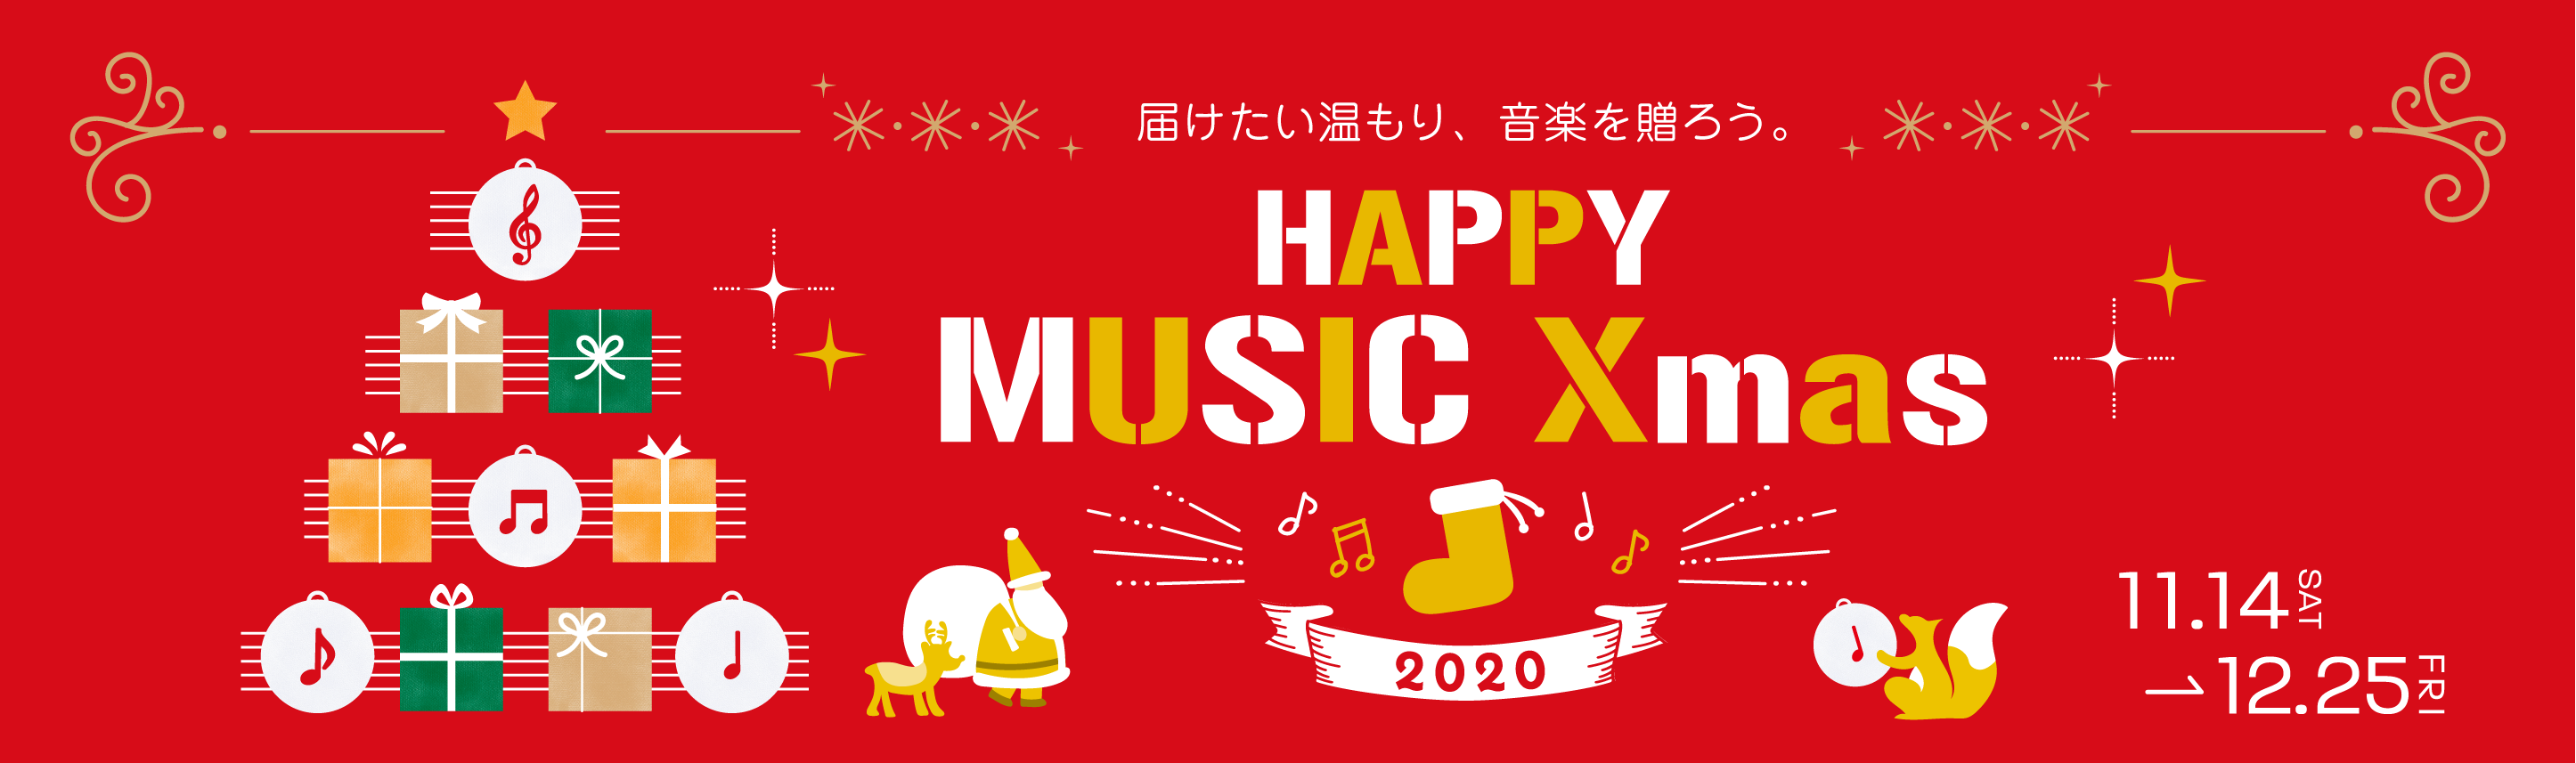 HAPPY MUSIC Xmas 2020